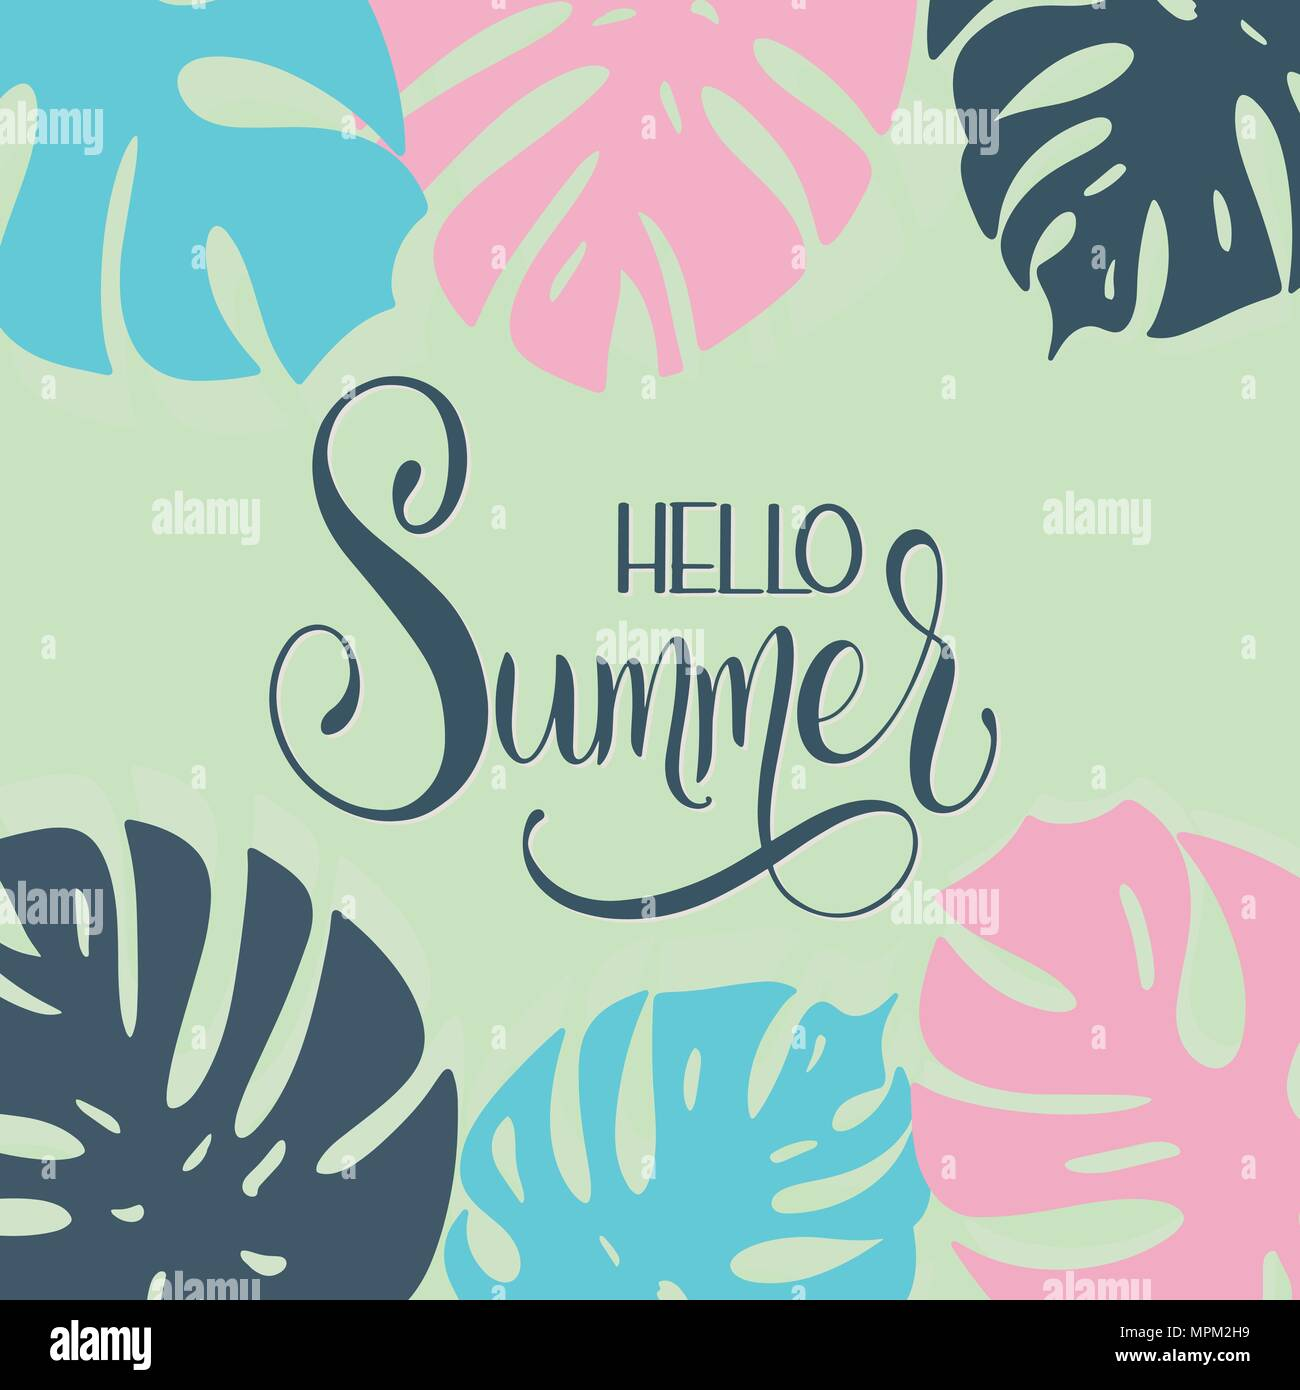 Hello summer lettering elements for invitations posters greeting hello summer lettering elements for invitations posters greeting cards seasons greetings m4hsunfo